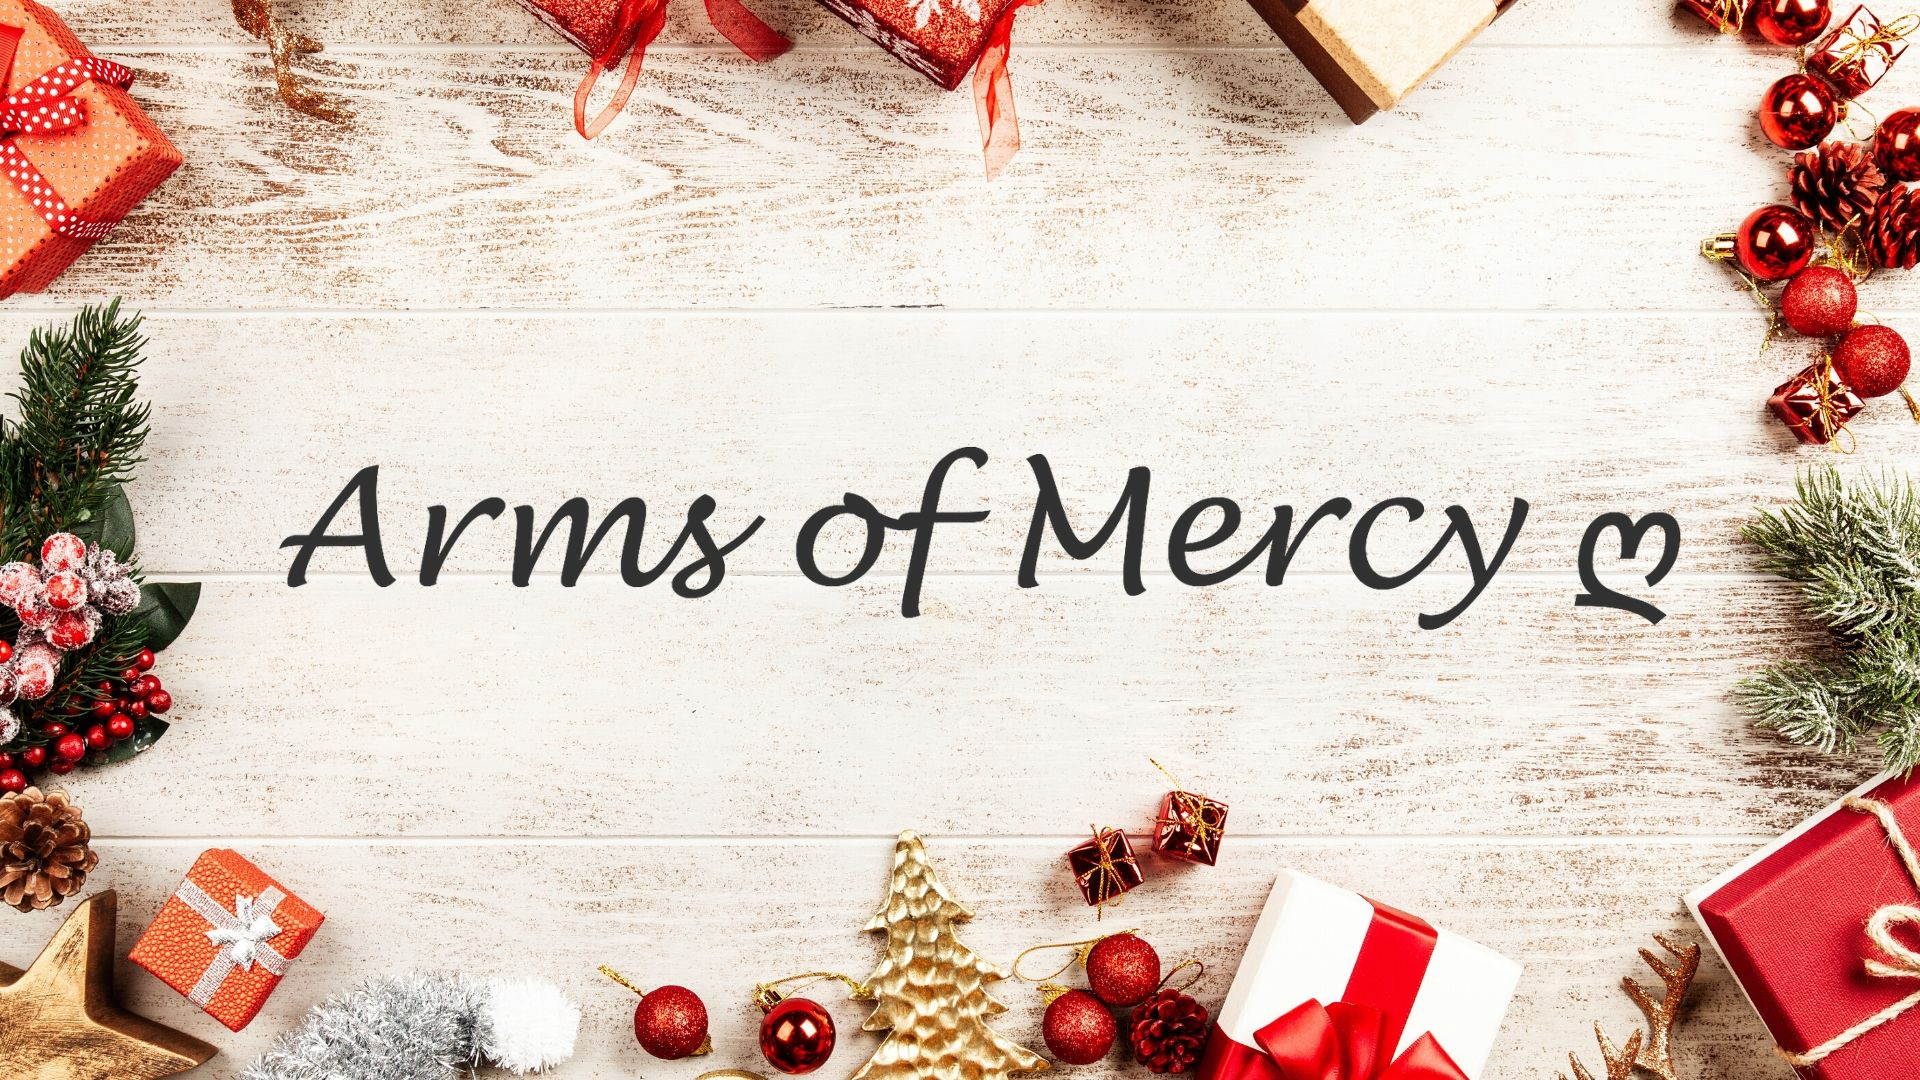 Spread the cheer with Arms of Mercy Christmas Napkin Holders this festive season